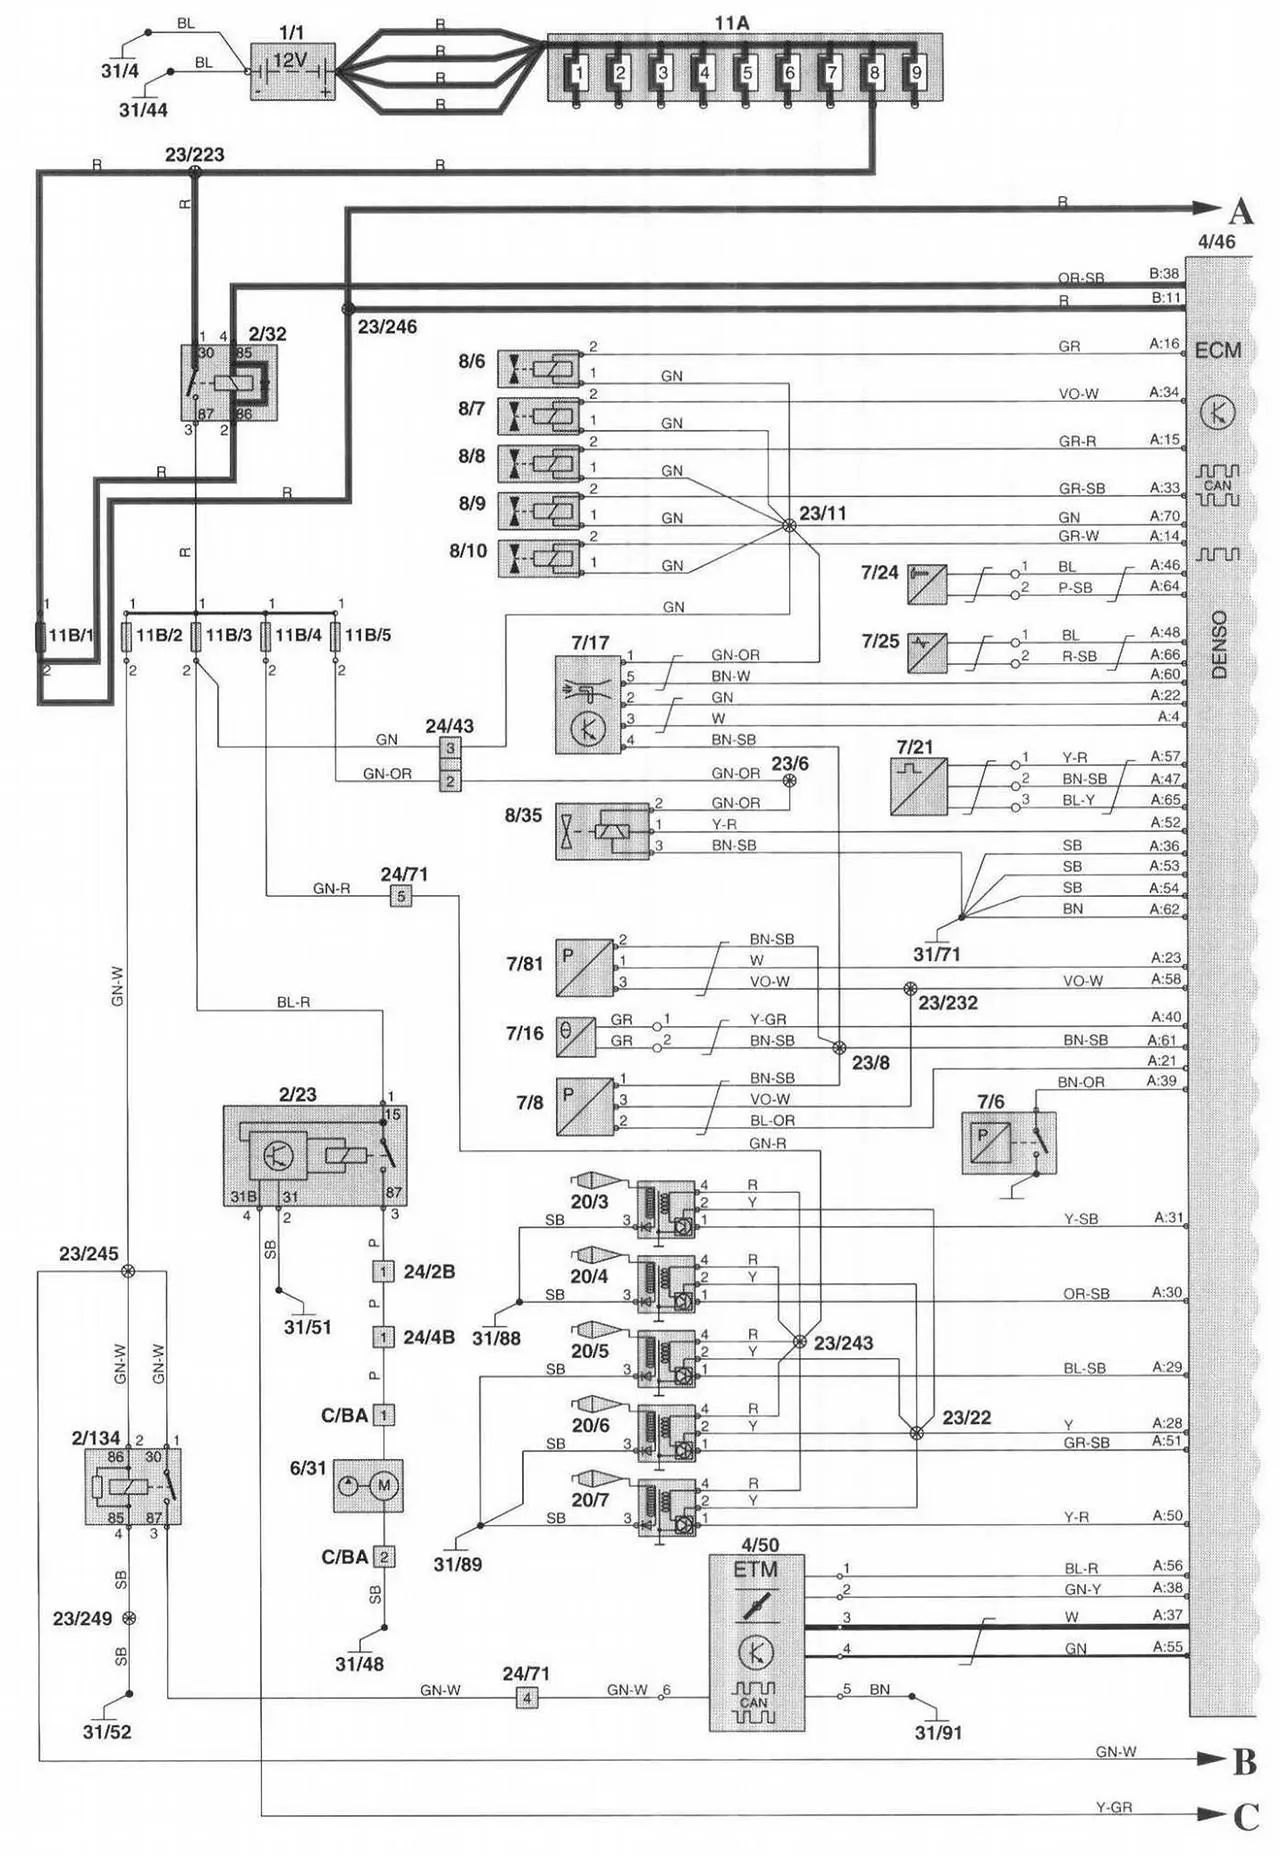 2007 volvo xc70 fuse box diagram